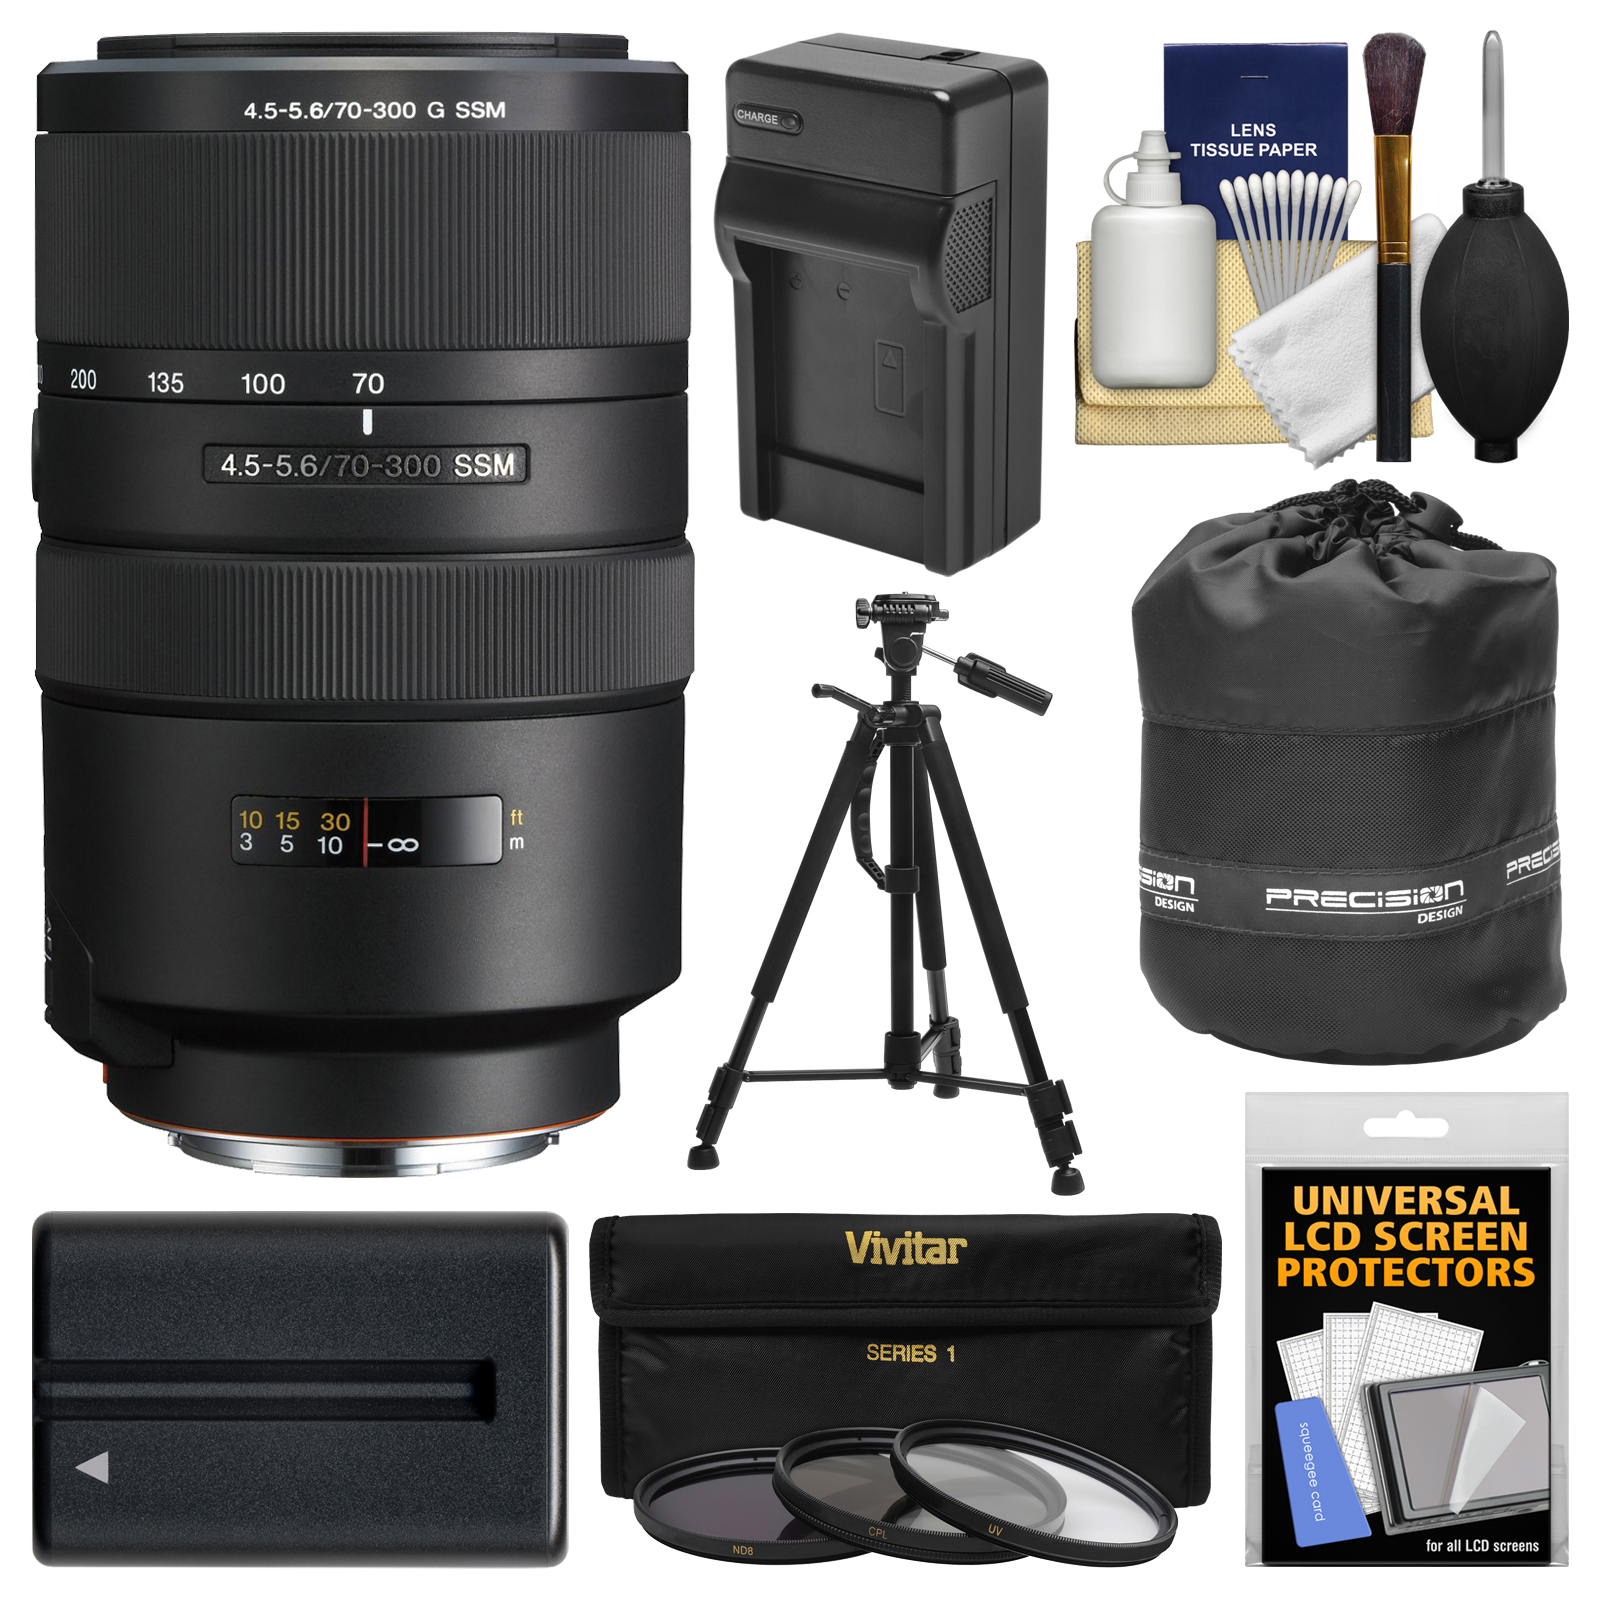 Sony Alpha A-Mount 70-300mm f/4.5-5.6 G SSM Zoom Lens with NP-FM500H Battery & Charger + Tripod + 3 Filters + Pouch + Kit for A37, A58, A65, A68, A77 II, A99 Cameras